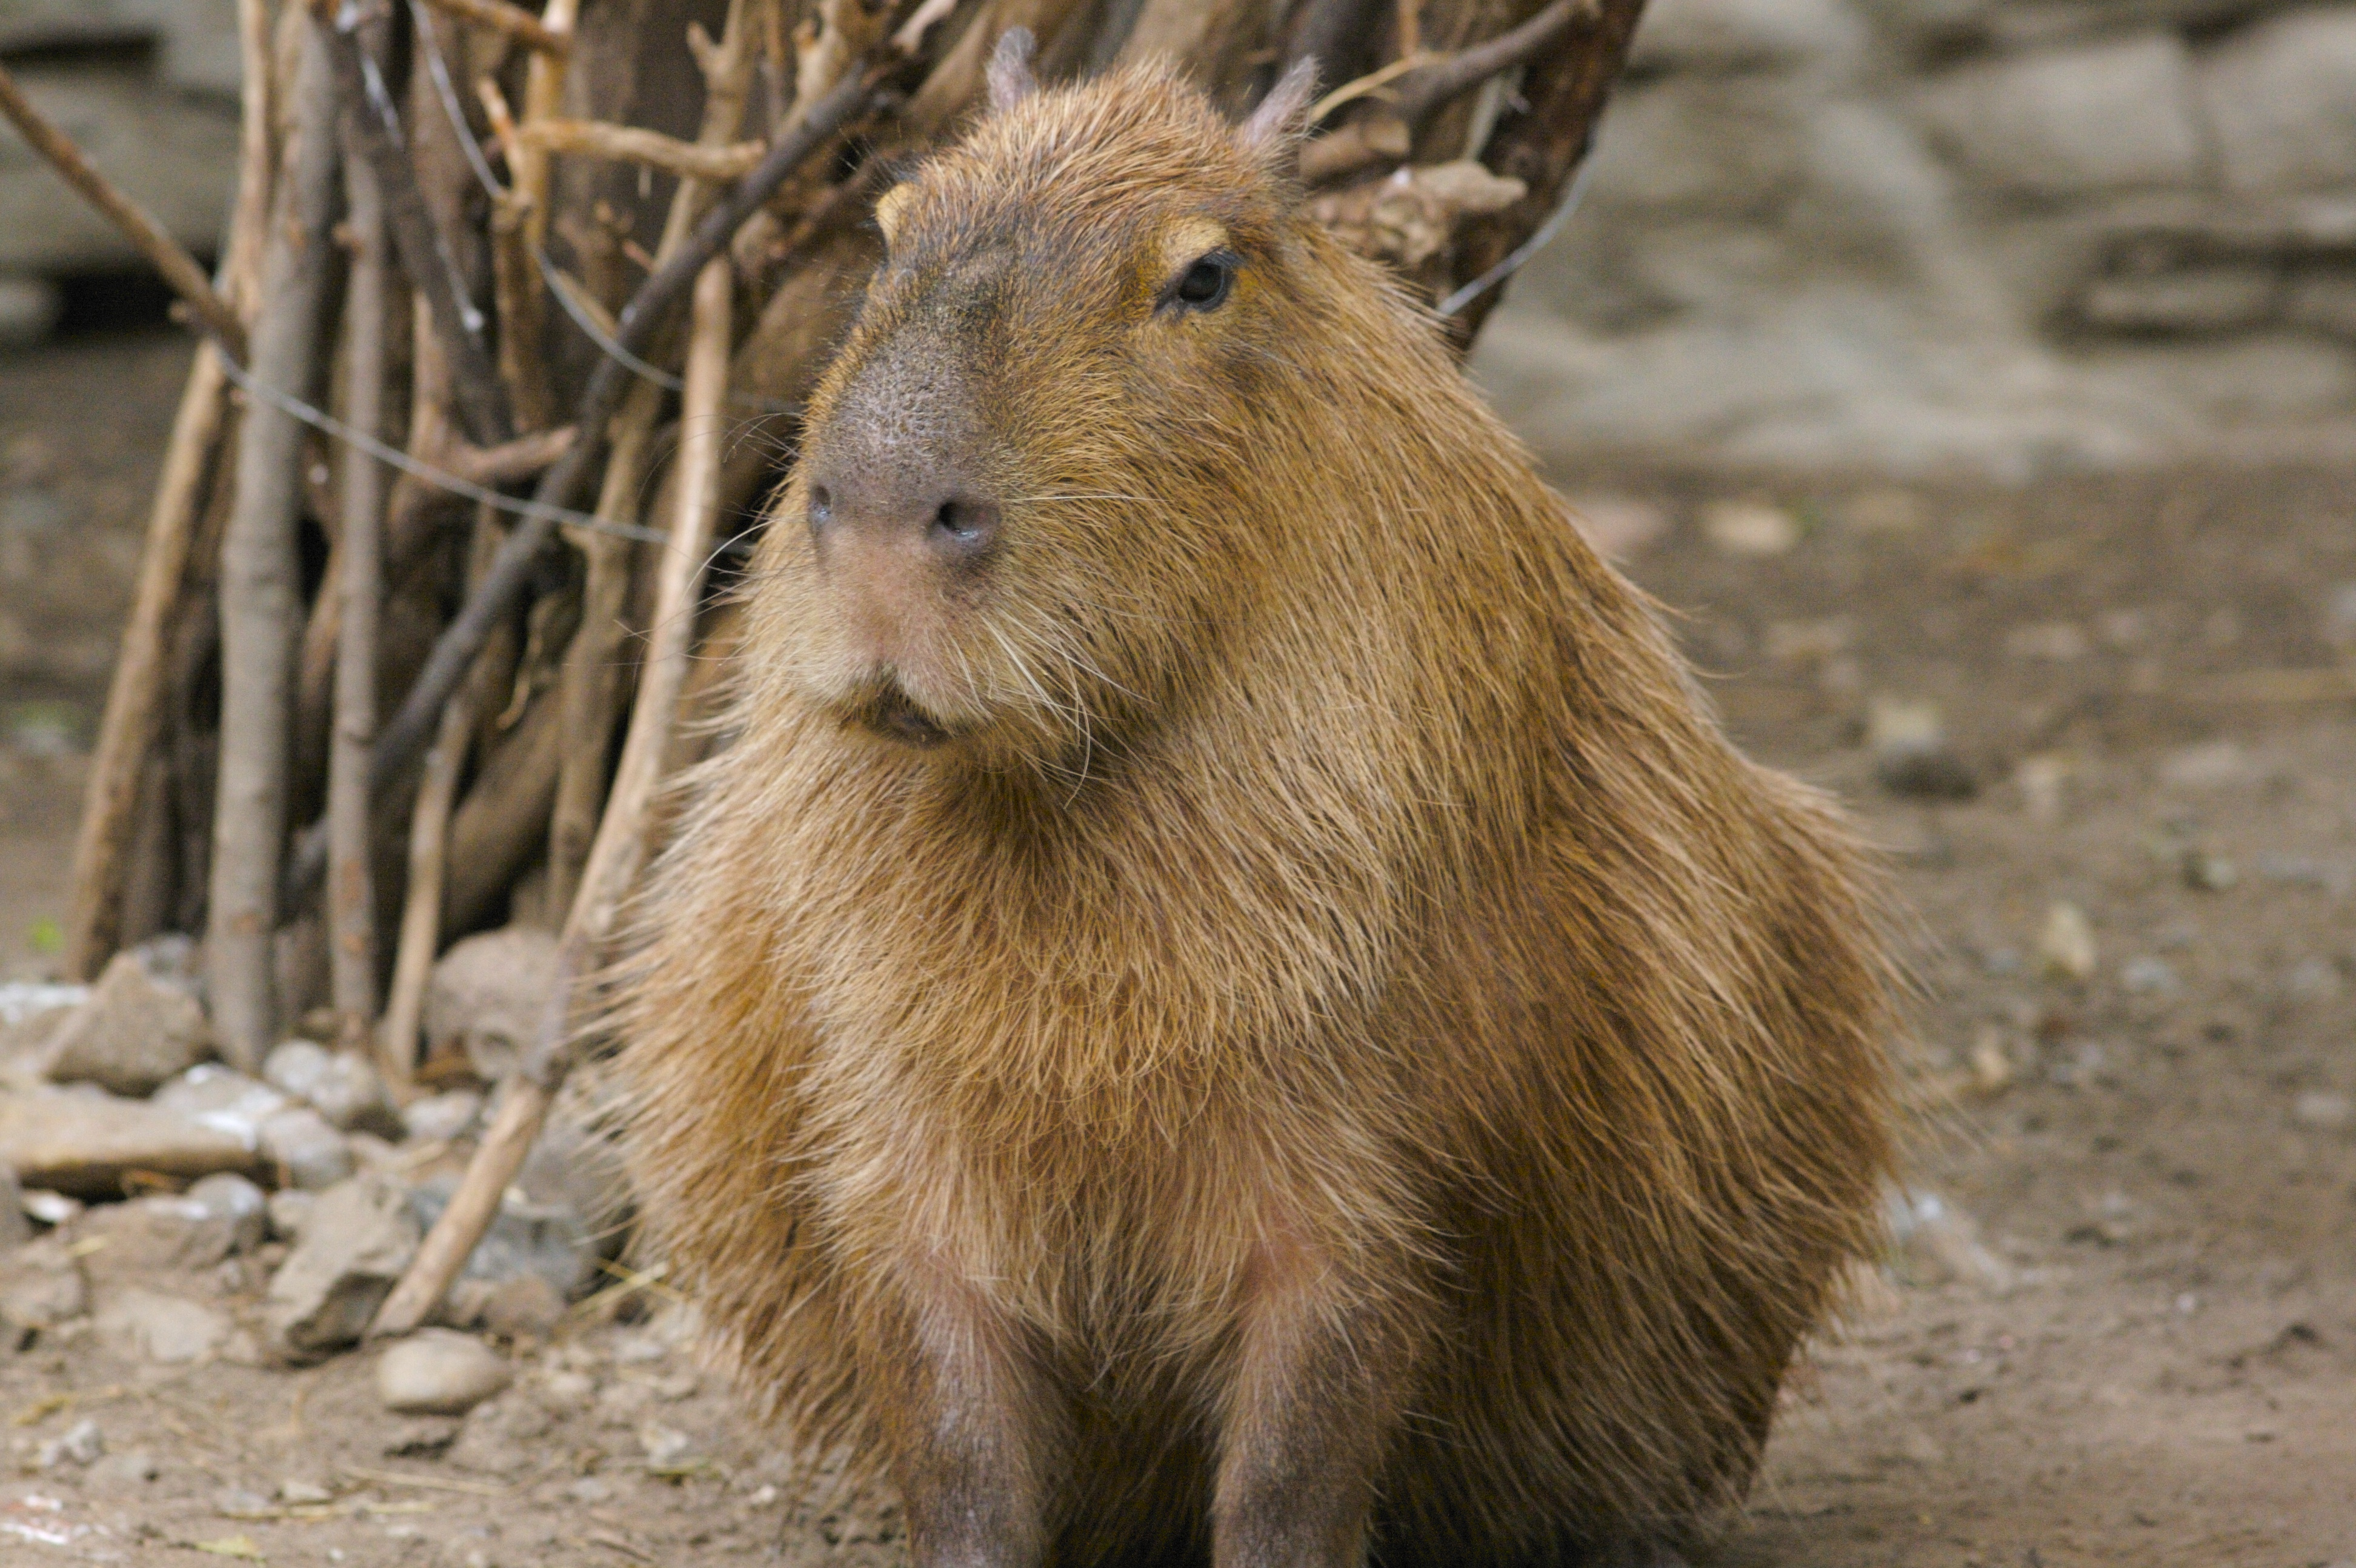 File:Capybara 2.jpg - Wikimedia Commons